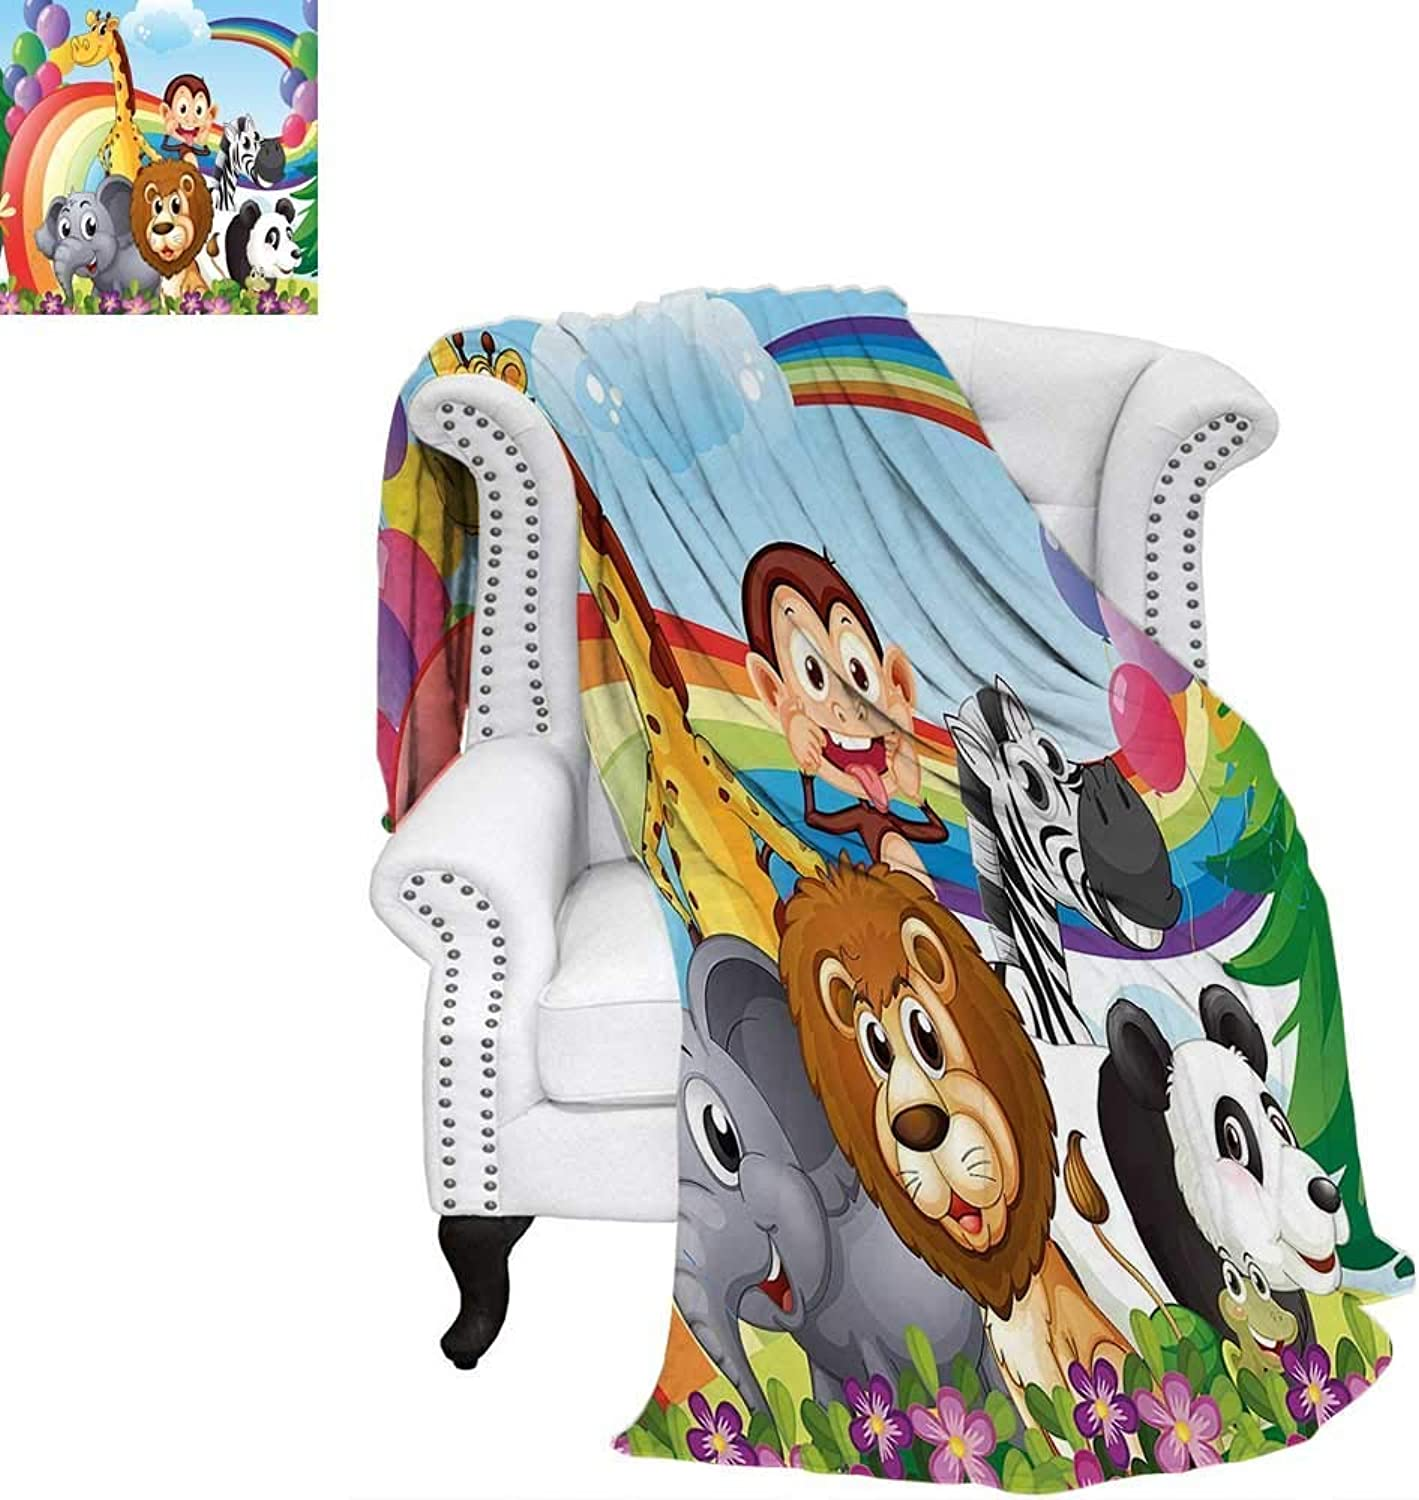 CHASOEA Nursery Travel Throw Blanket Group of Animals at The Hilltop with a Rainbow and Balloons Fresh Garden Happy Velvet Plush Throw Blanket 62 x60  Multicolor